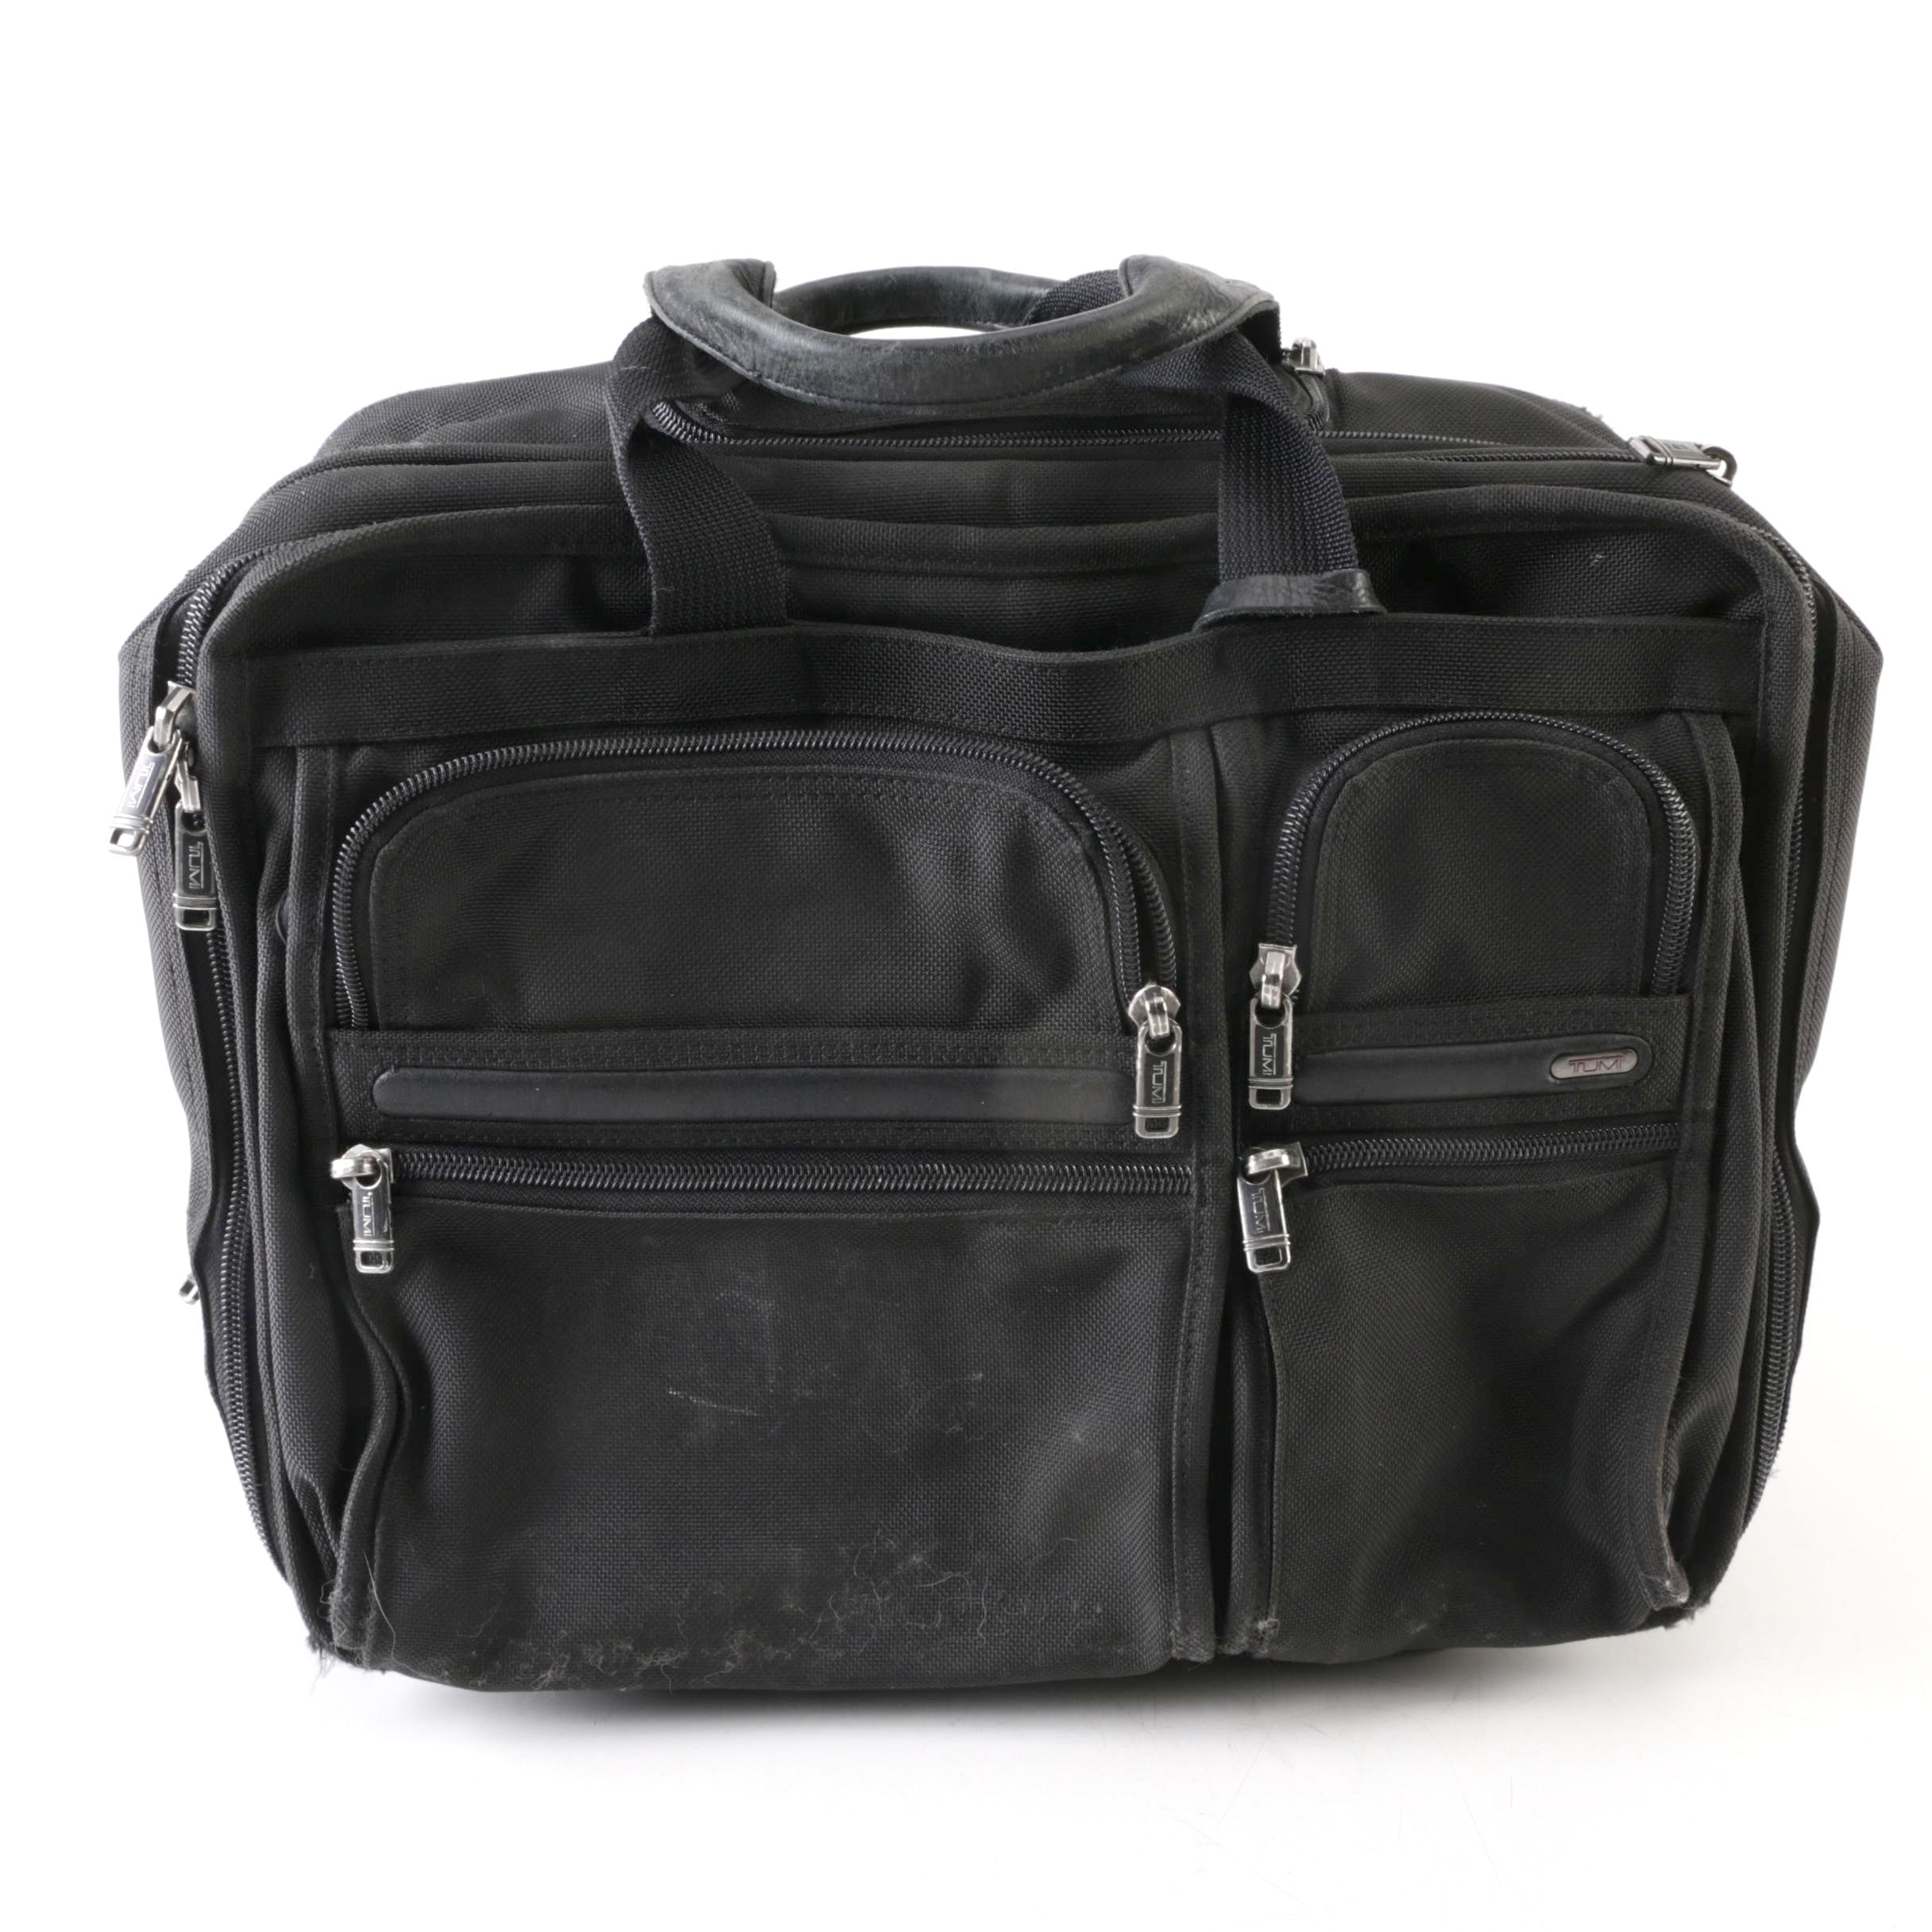 Tumi Black Canvas Rolling Carry-On Suitcase